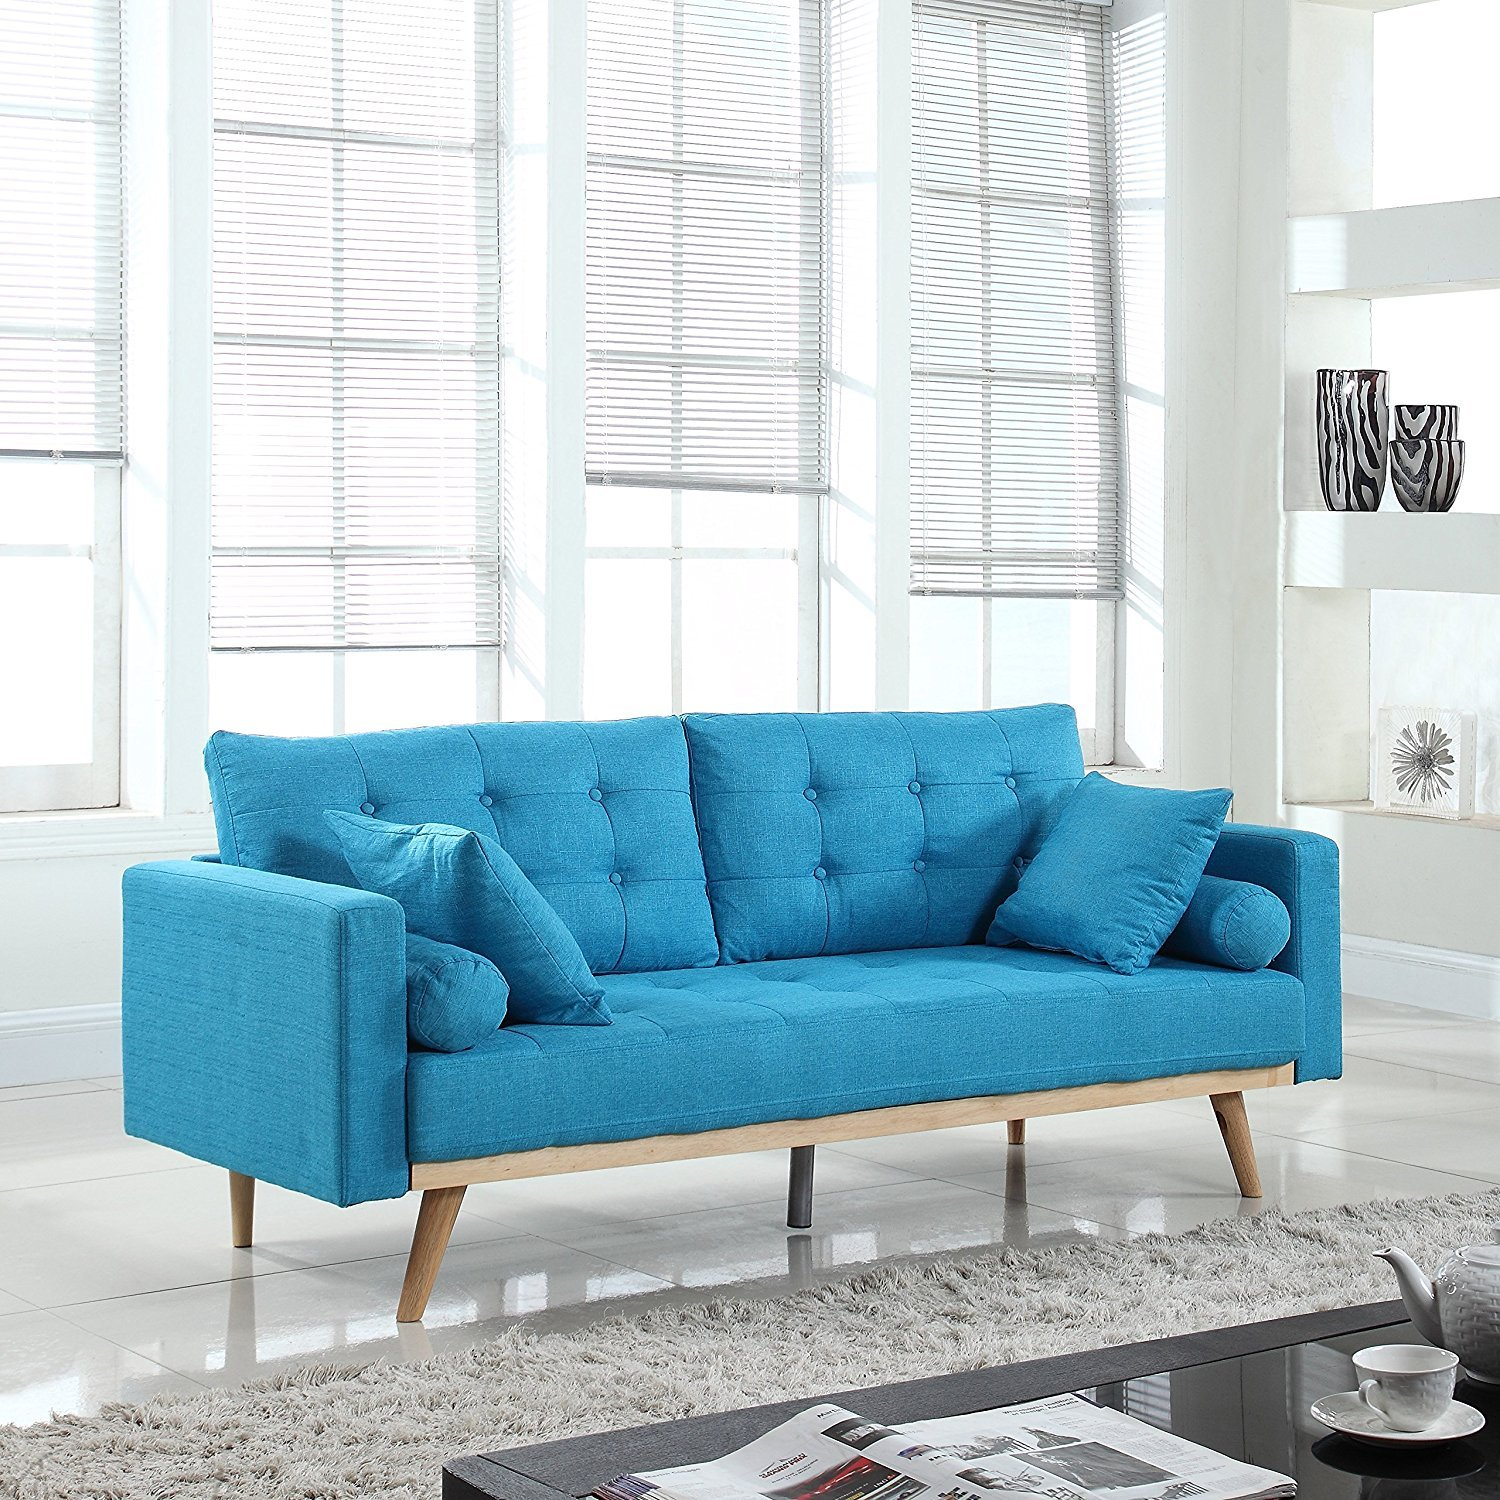 Modern Tufted Linen Fabric Sofa (Light Blue) – Rochester For Blue Sofa Chairs (View 9 of 15)